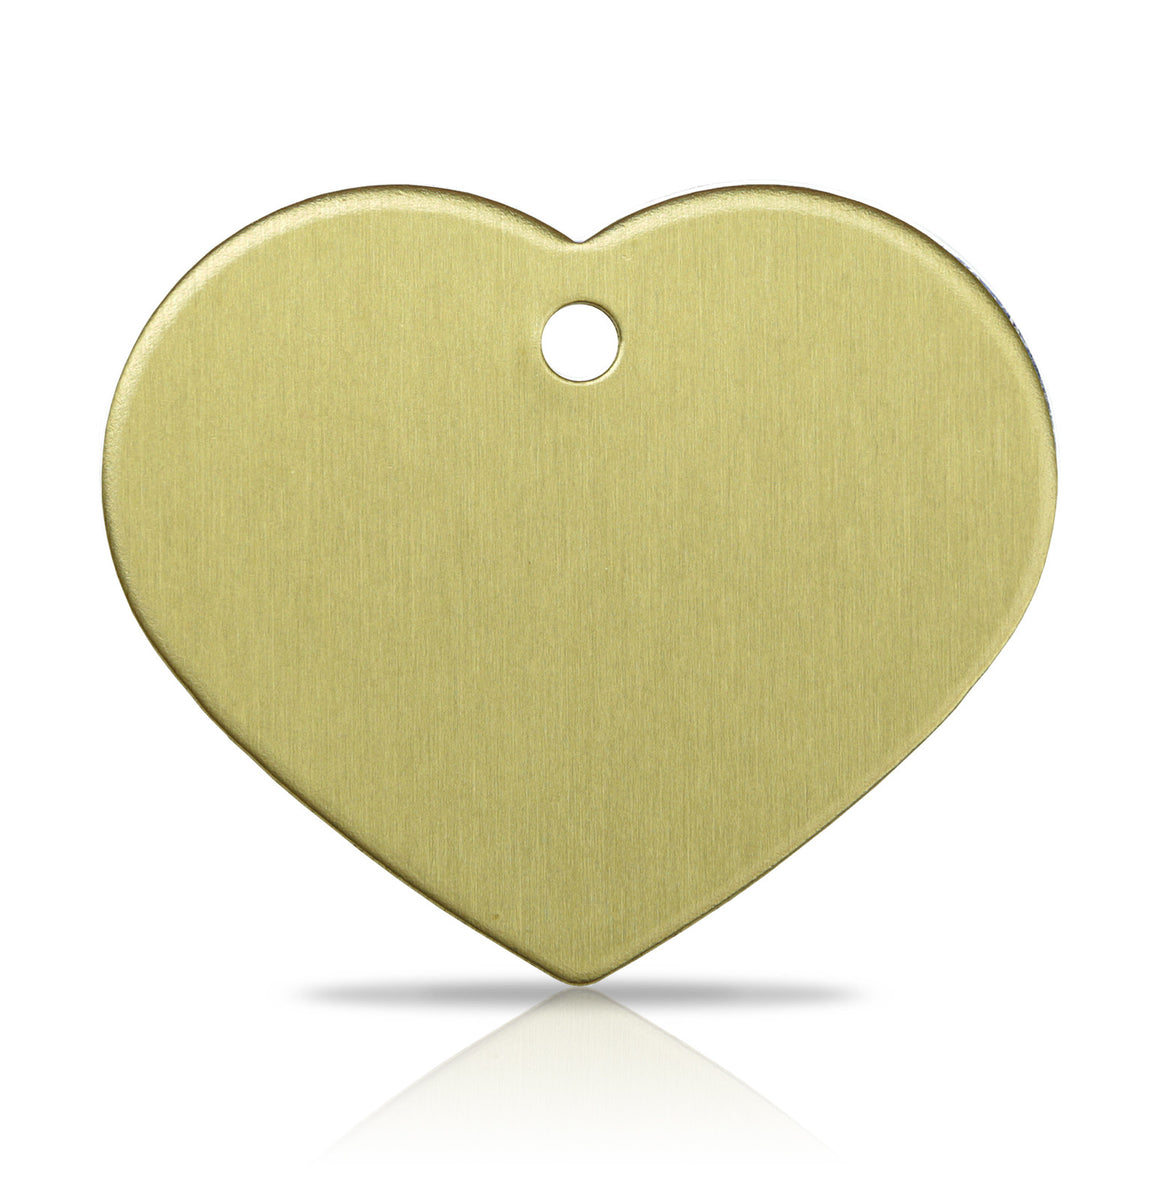 TaggIT Brass Series Large Heart Dog Tag Pet Tag iMarc Tag